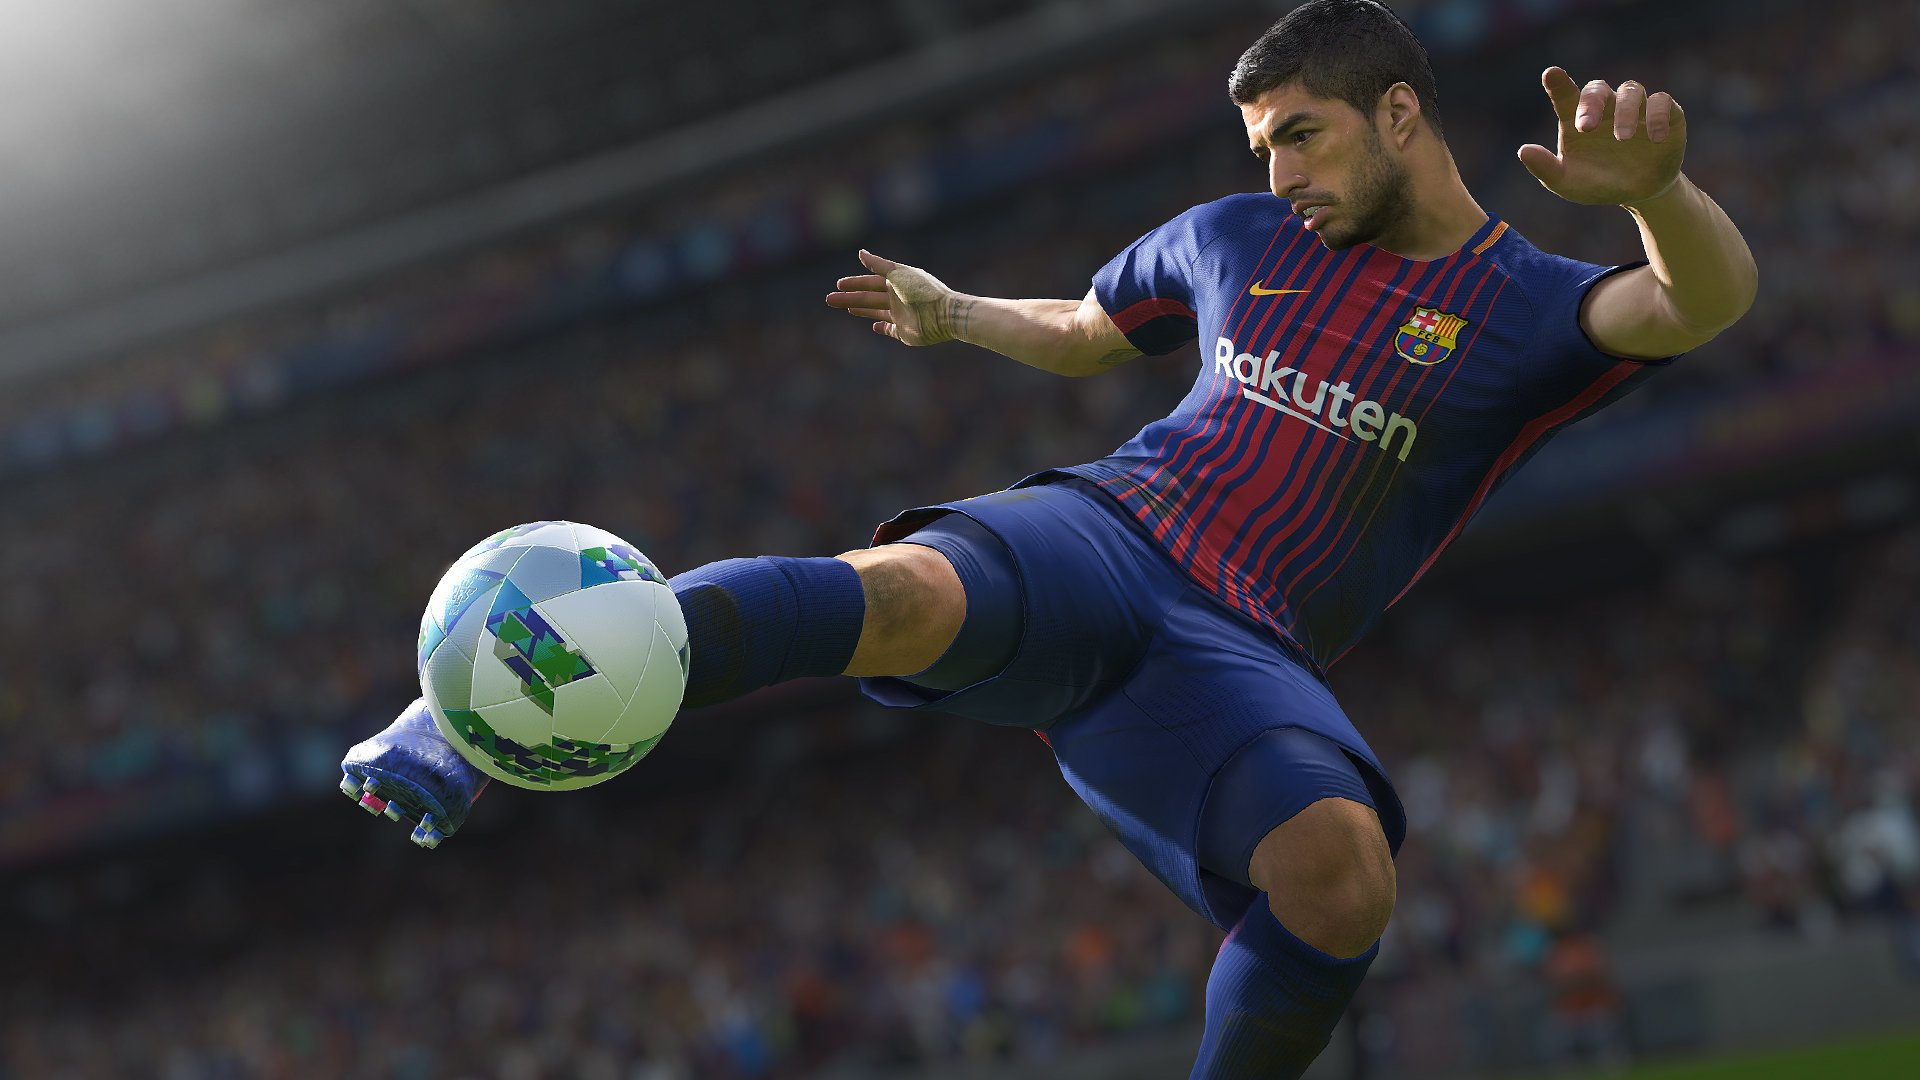 Download fifa 18 hd wallpapers 1920x1080 - 18 by 9 wallpaper ...